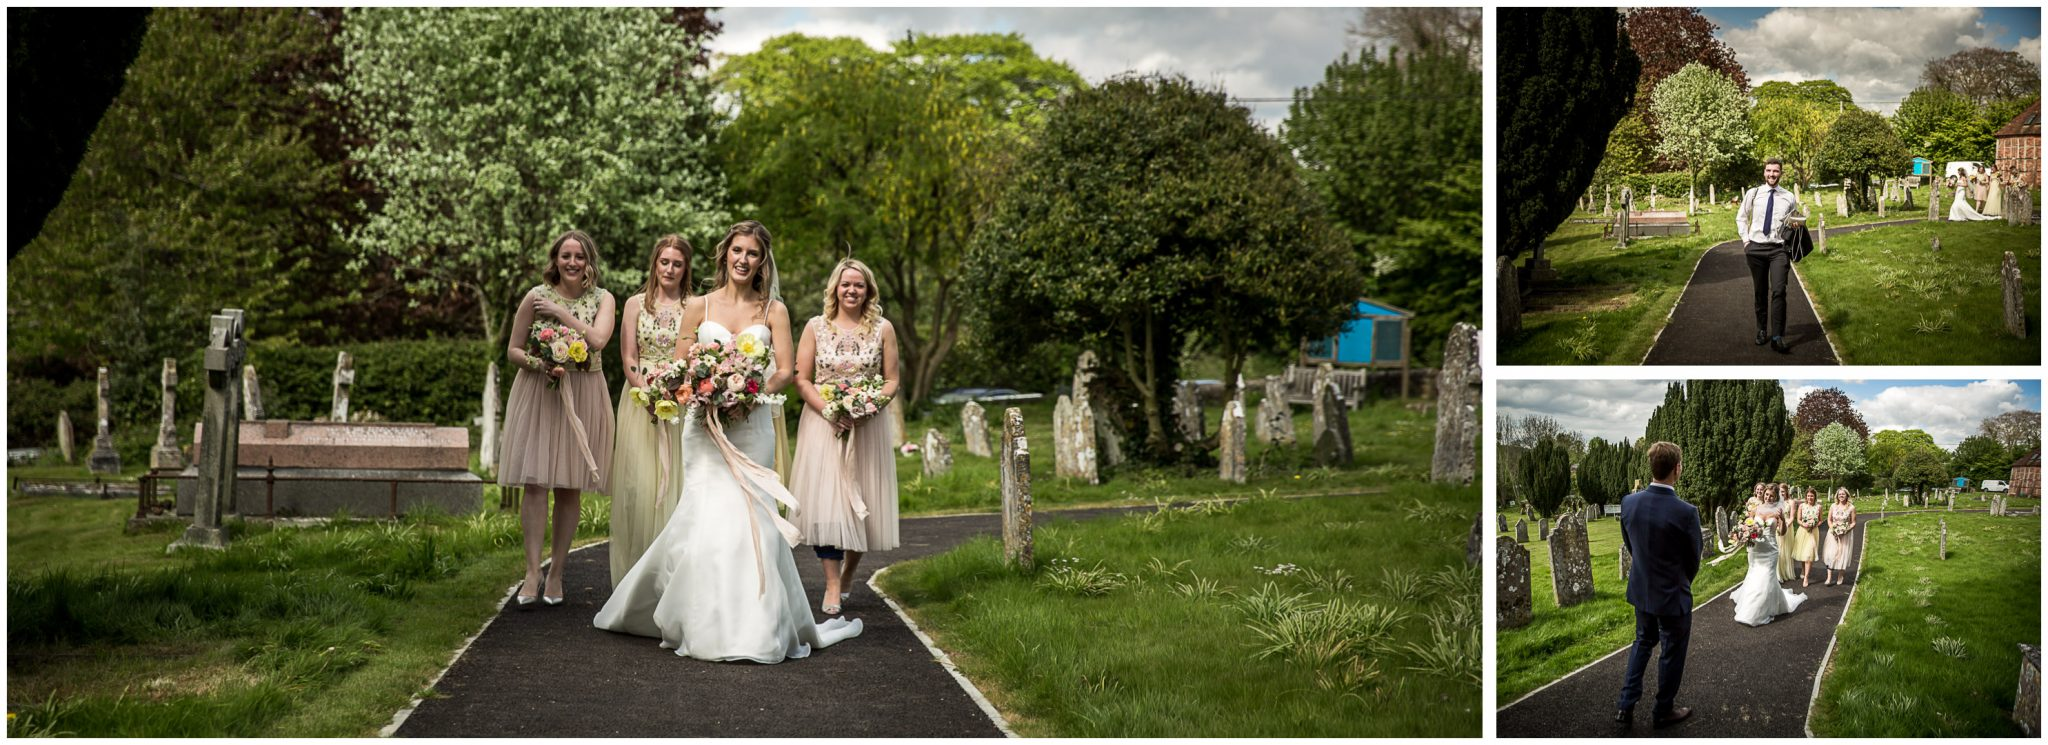 Bride arrives outside church with bridesmaids